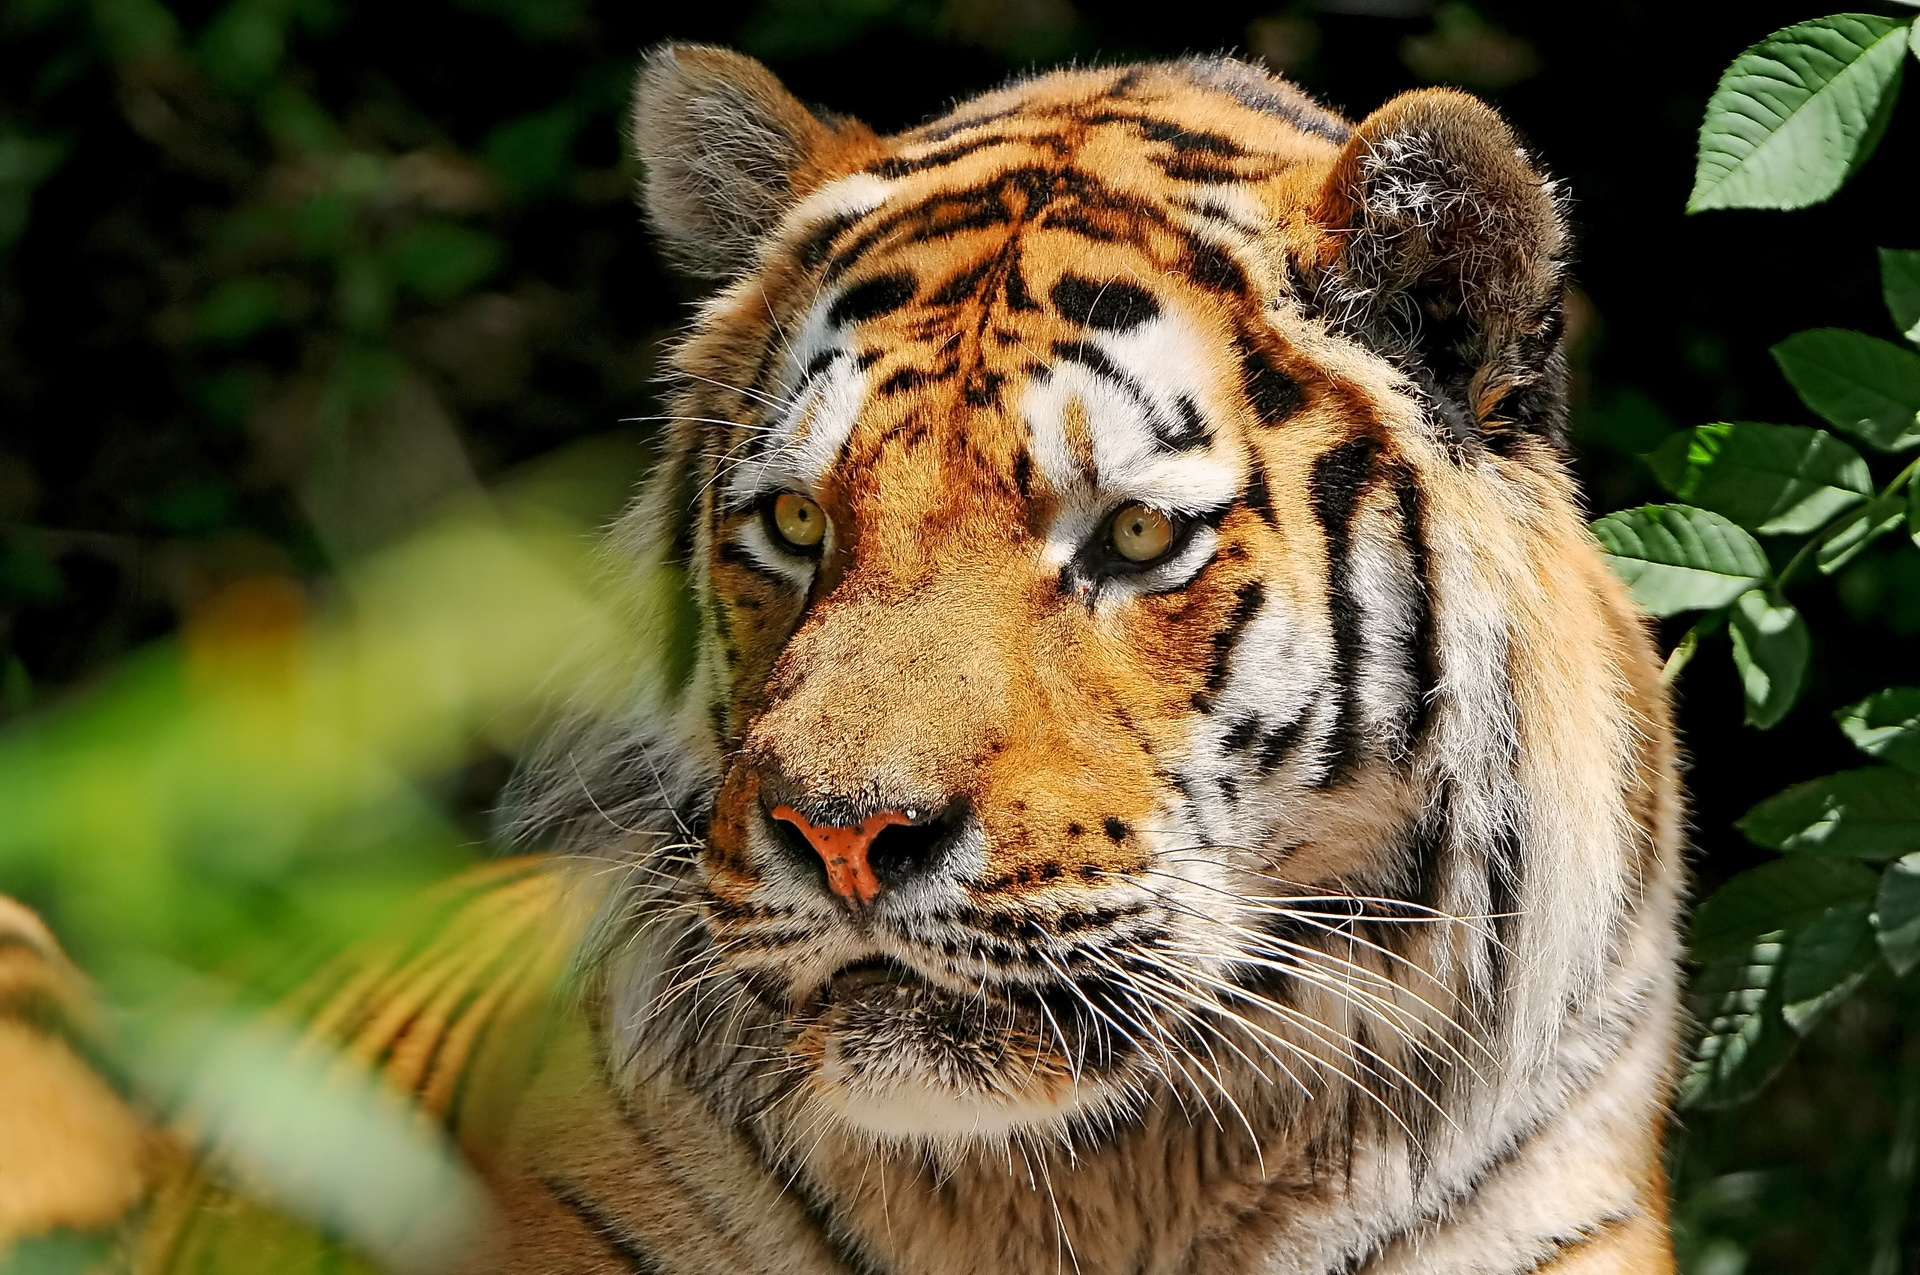 133965 download wallpaper Animals, Tiger, Grass, Predator, Blur, Smooth screensavers and pictures for free